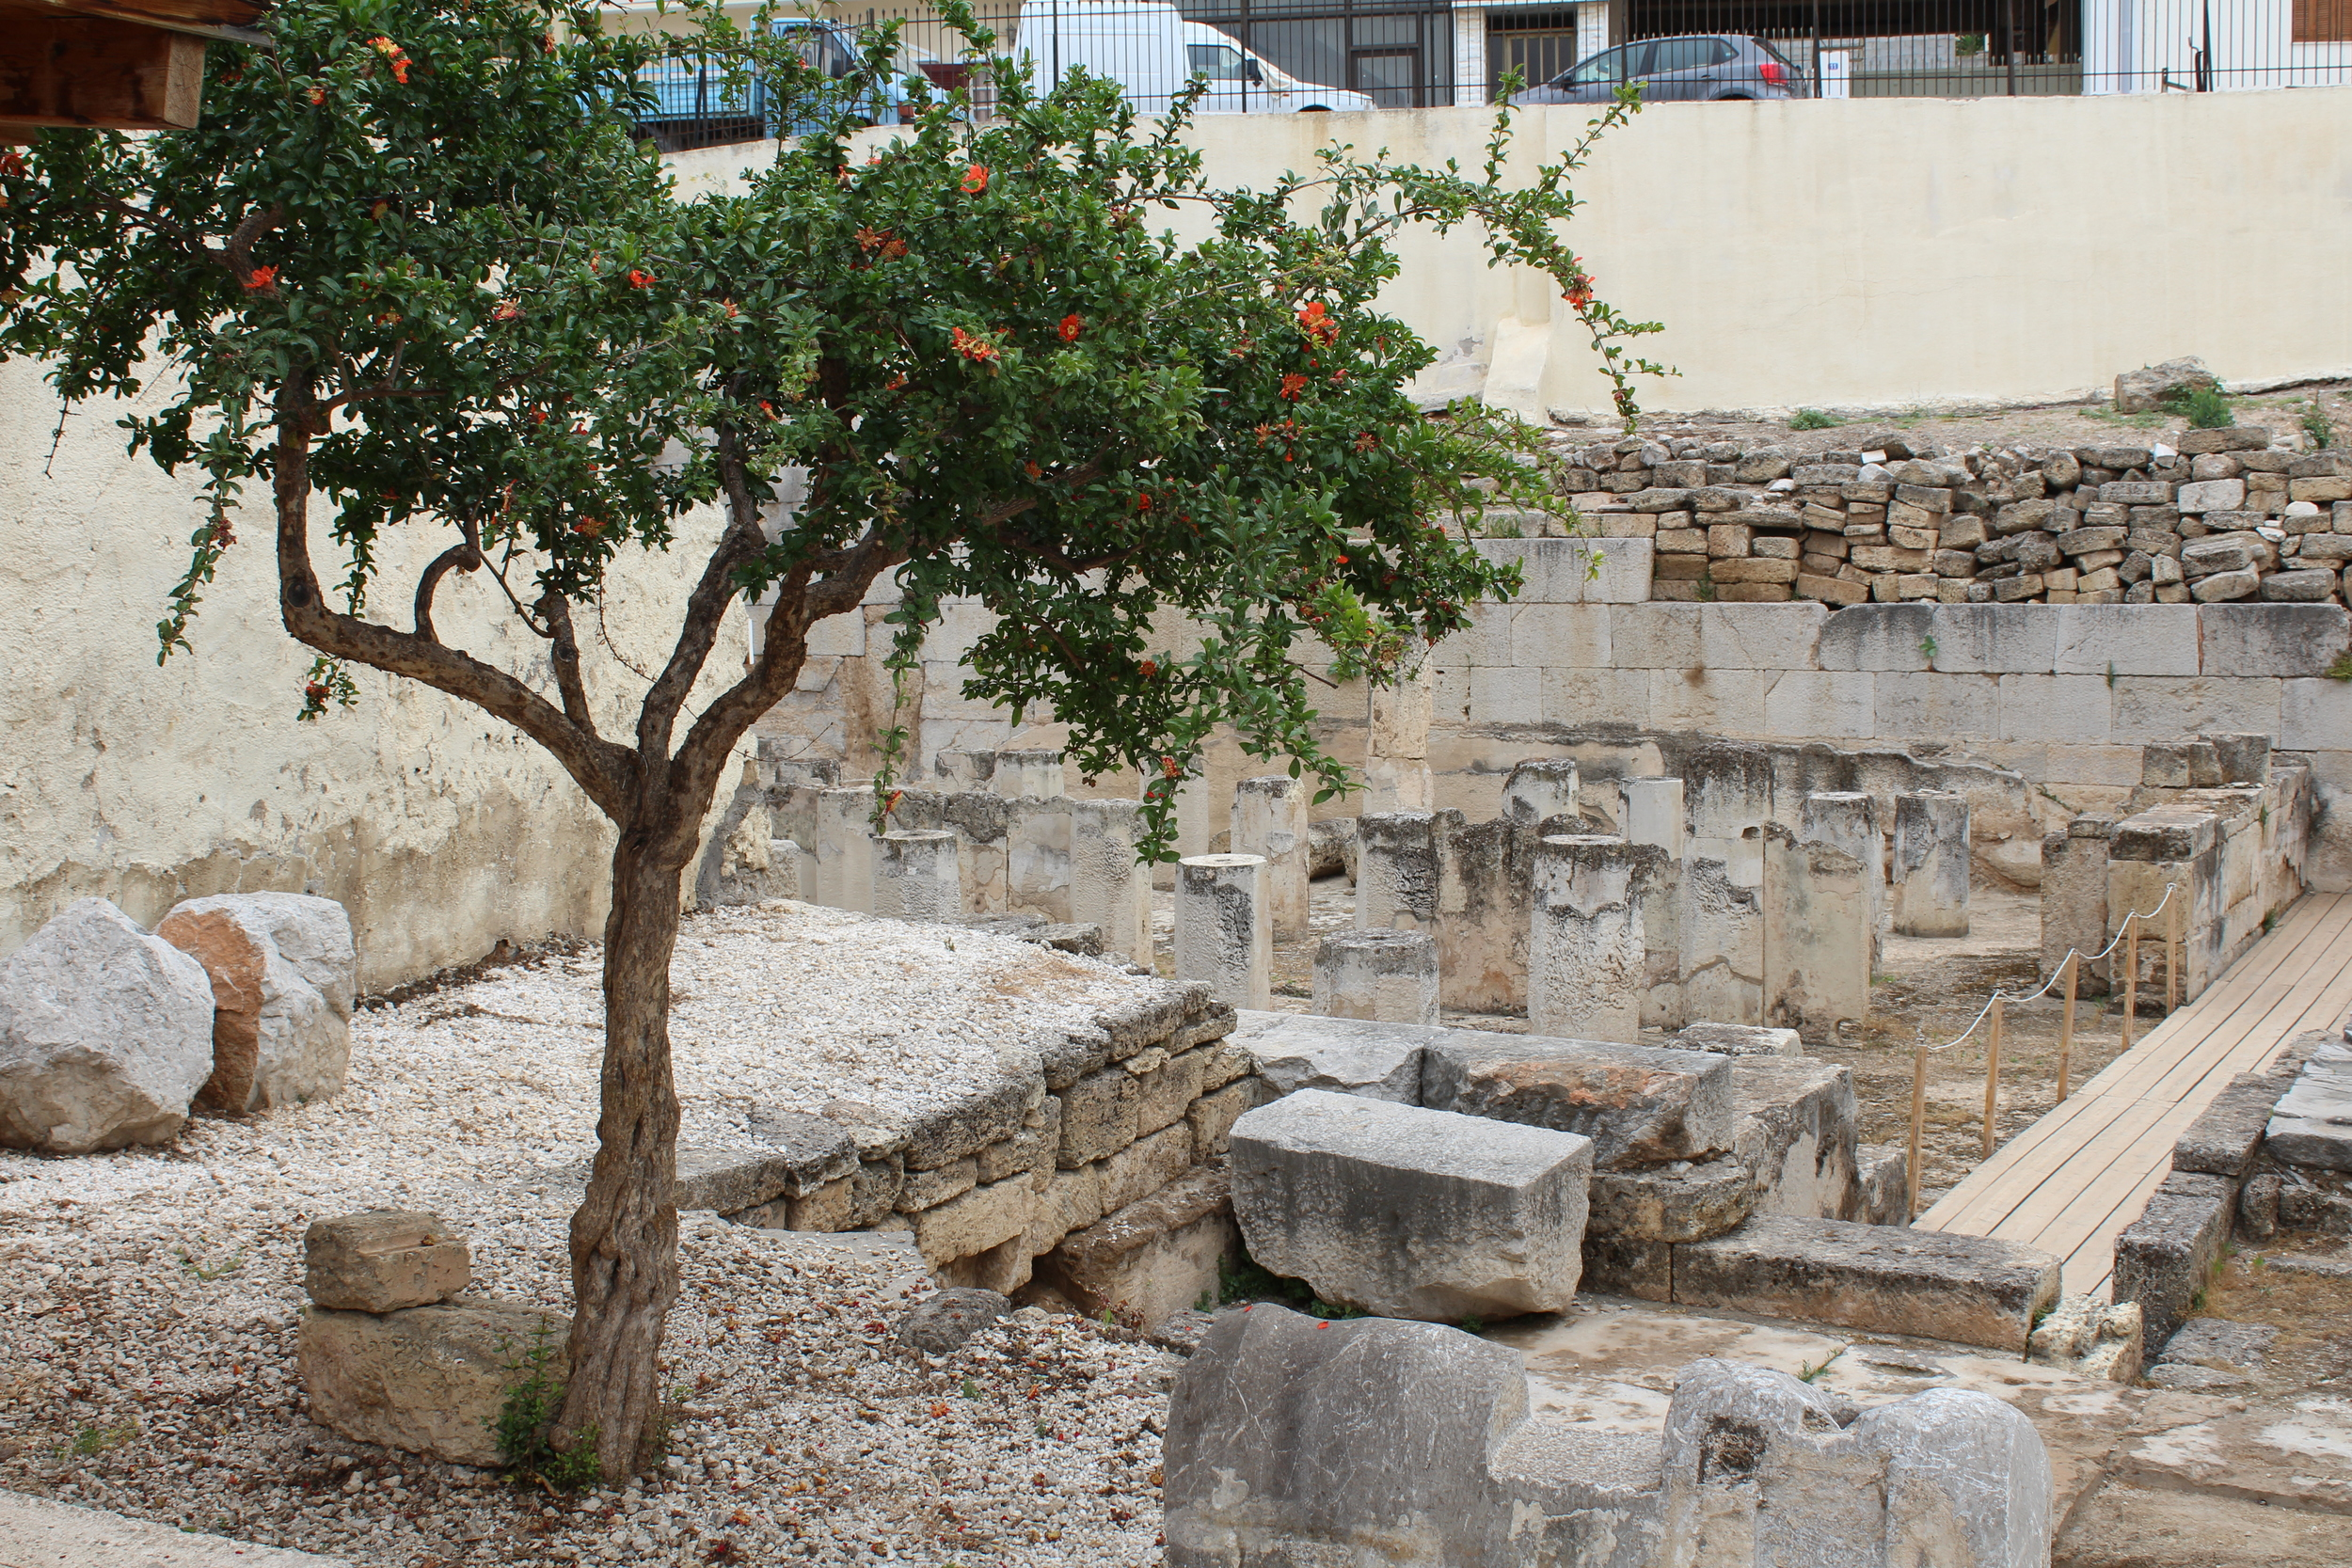 The 'Fountain House of Theagenes' in Megara, the largest of its kind in Archaic greece.